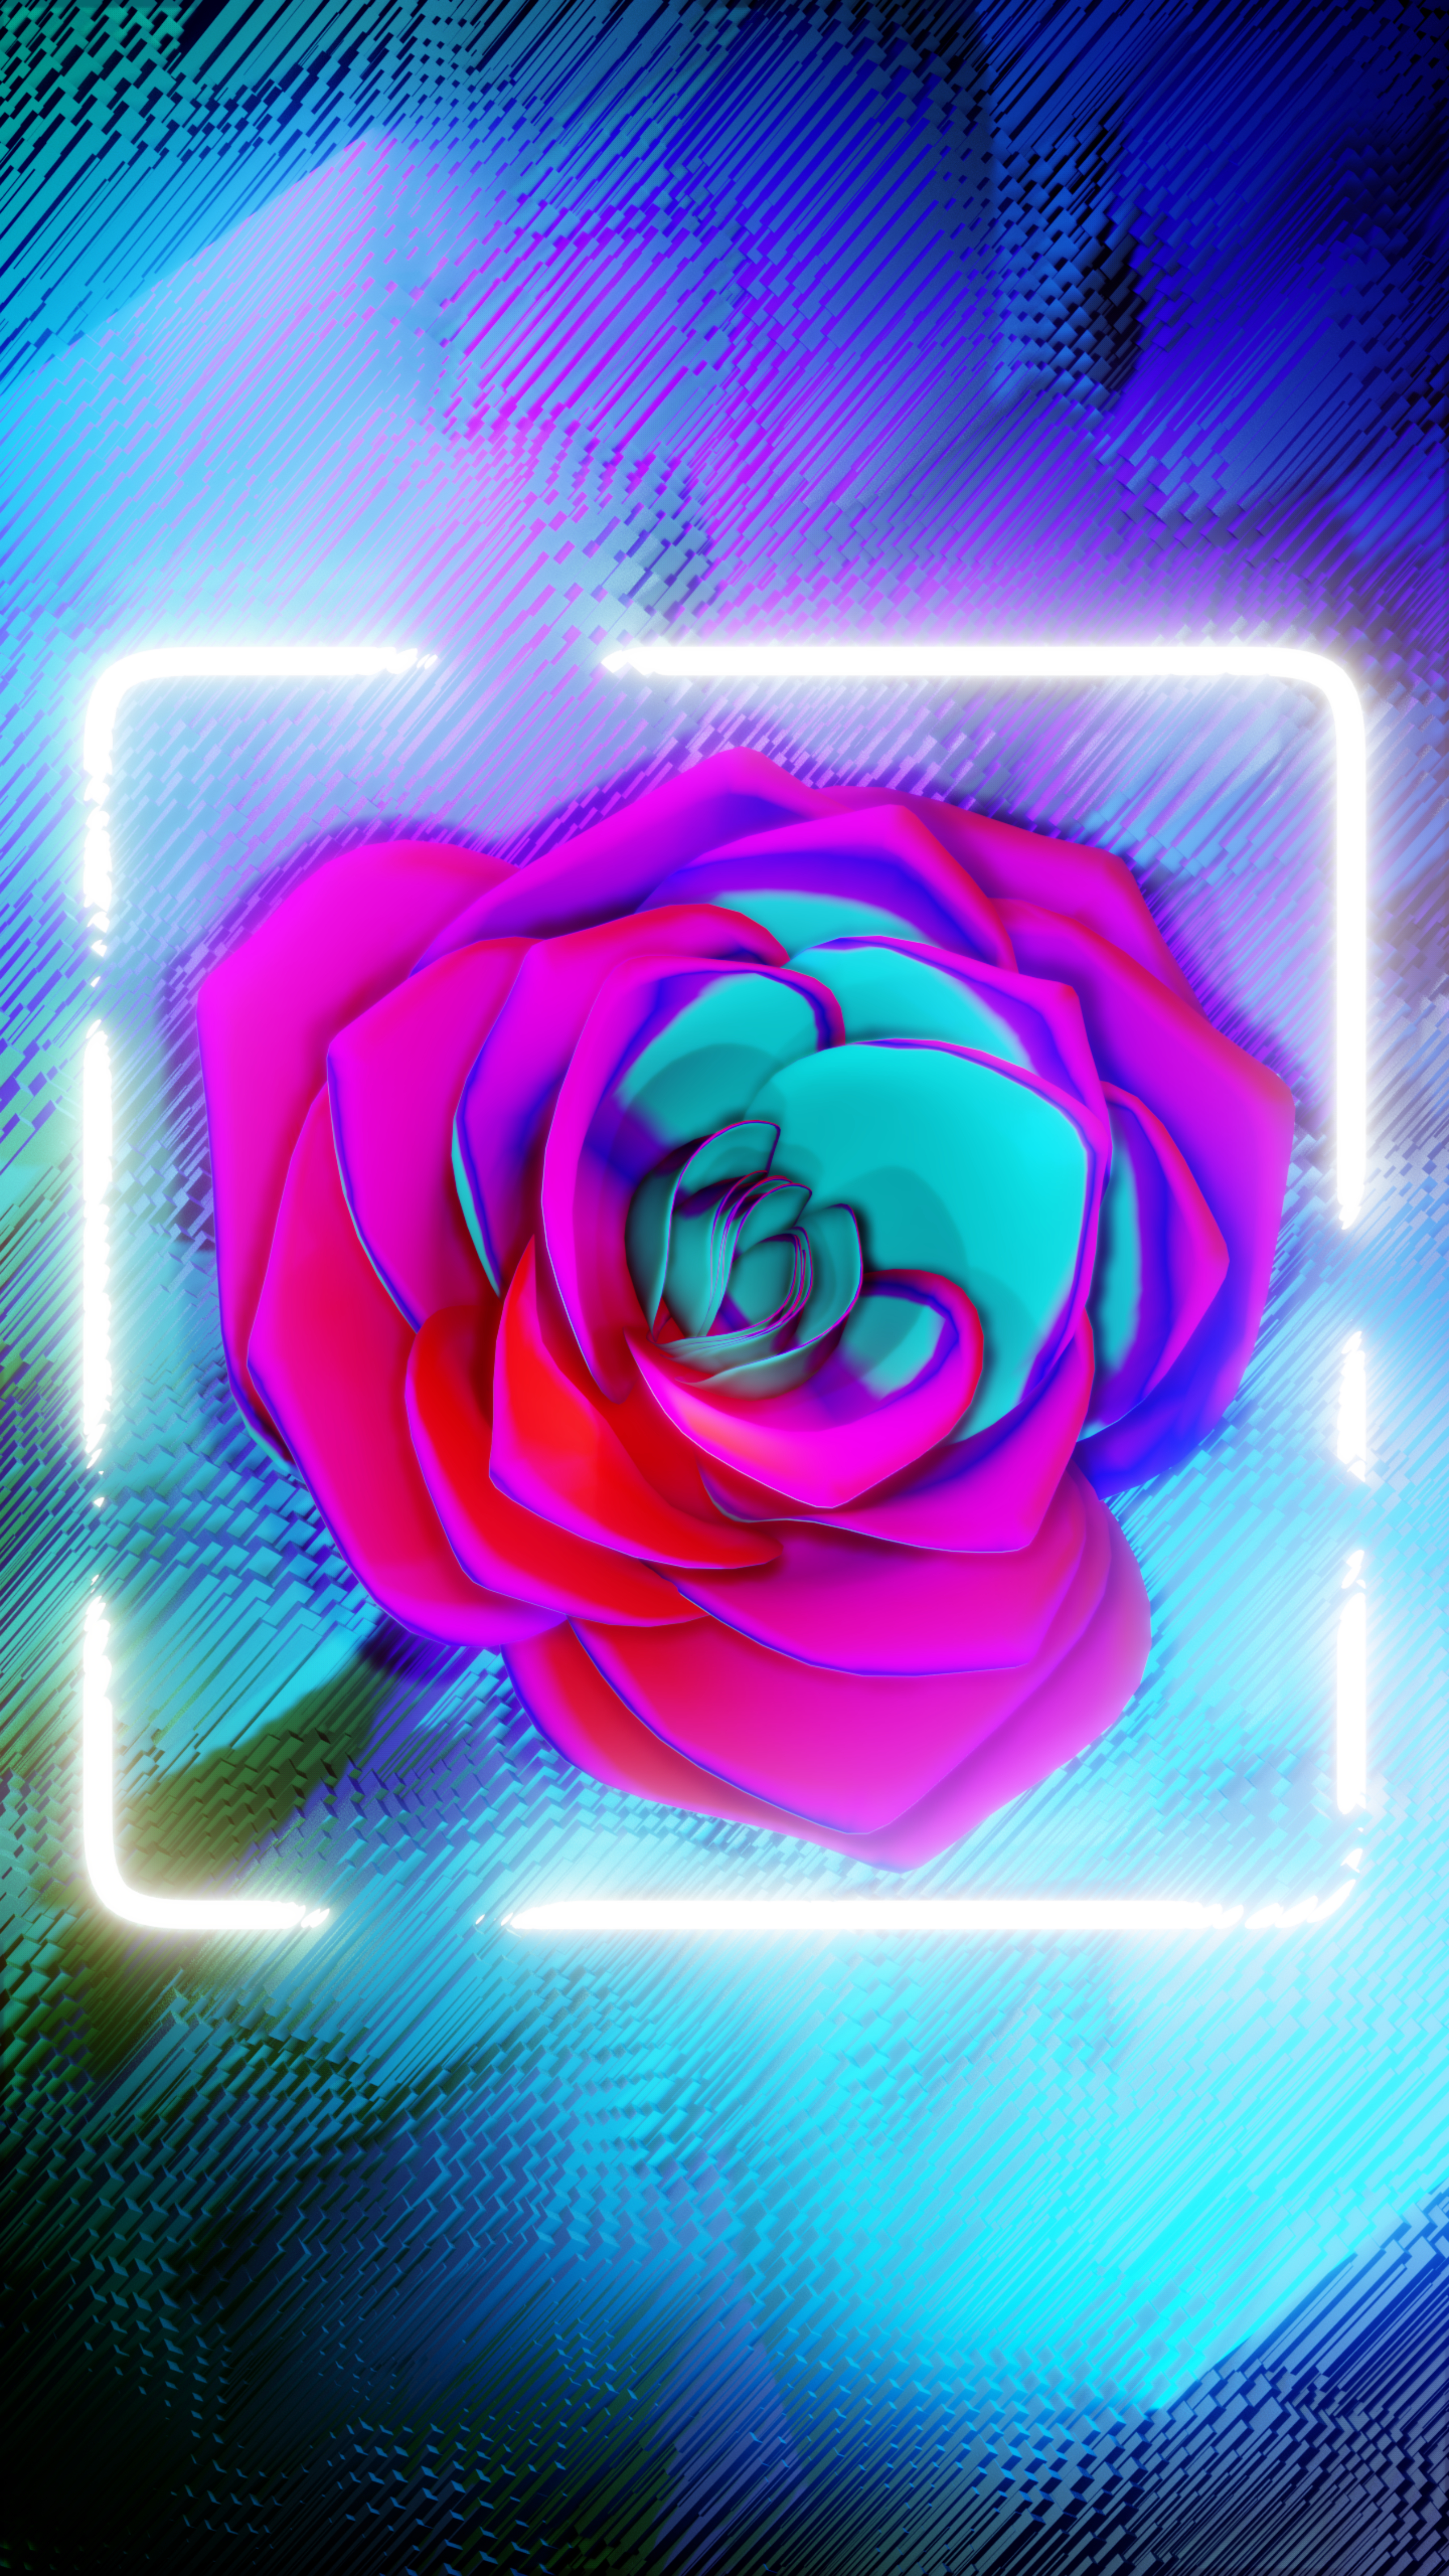 120552 download wallpaper 3D, Flower, Neon, Frame, Glow, Bright screensavers and pictures for free